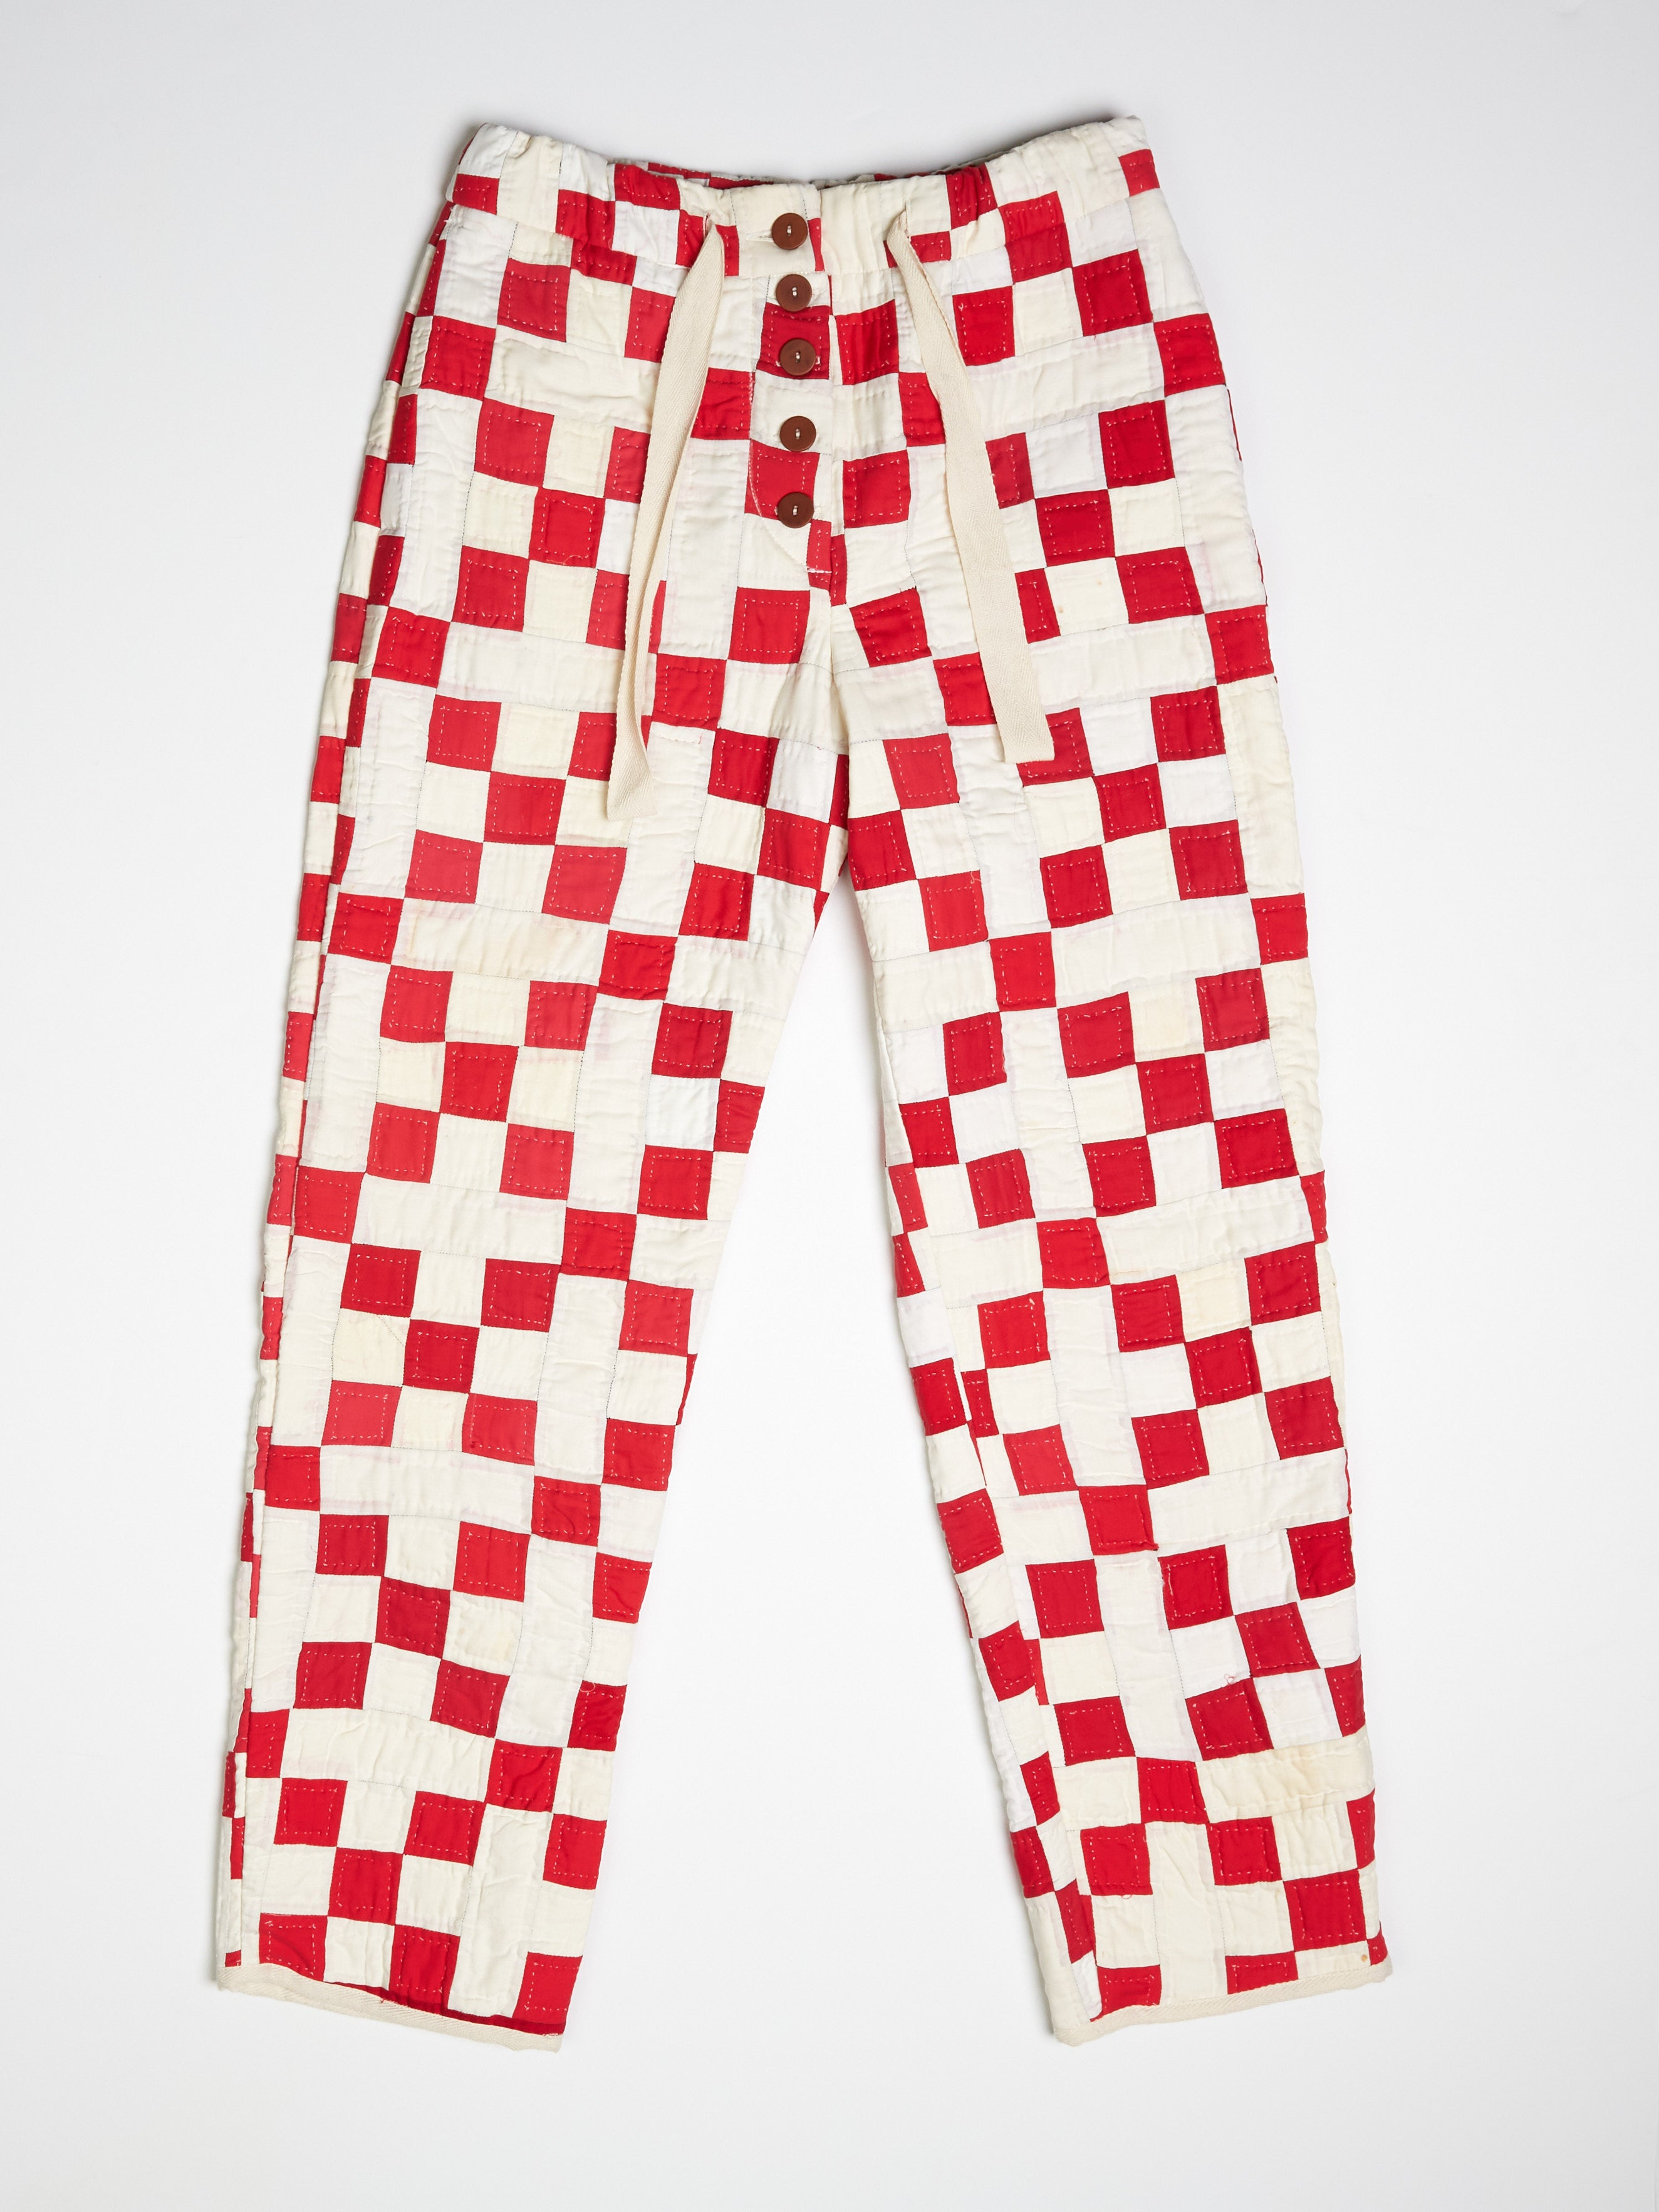 Nine Patch Quilted Pant